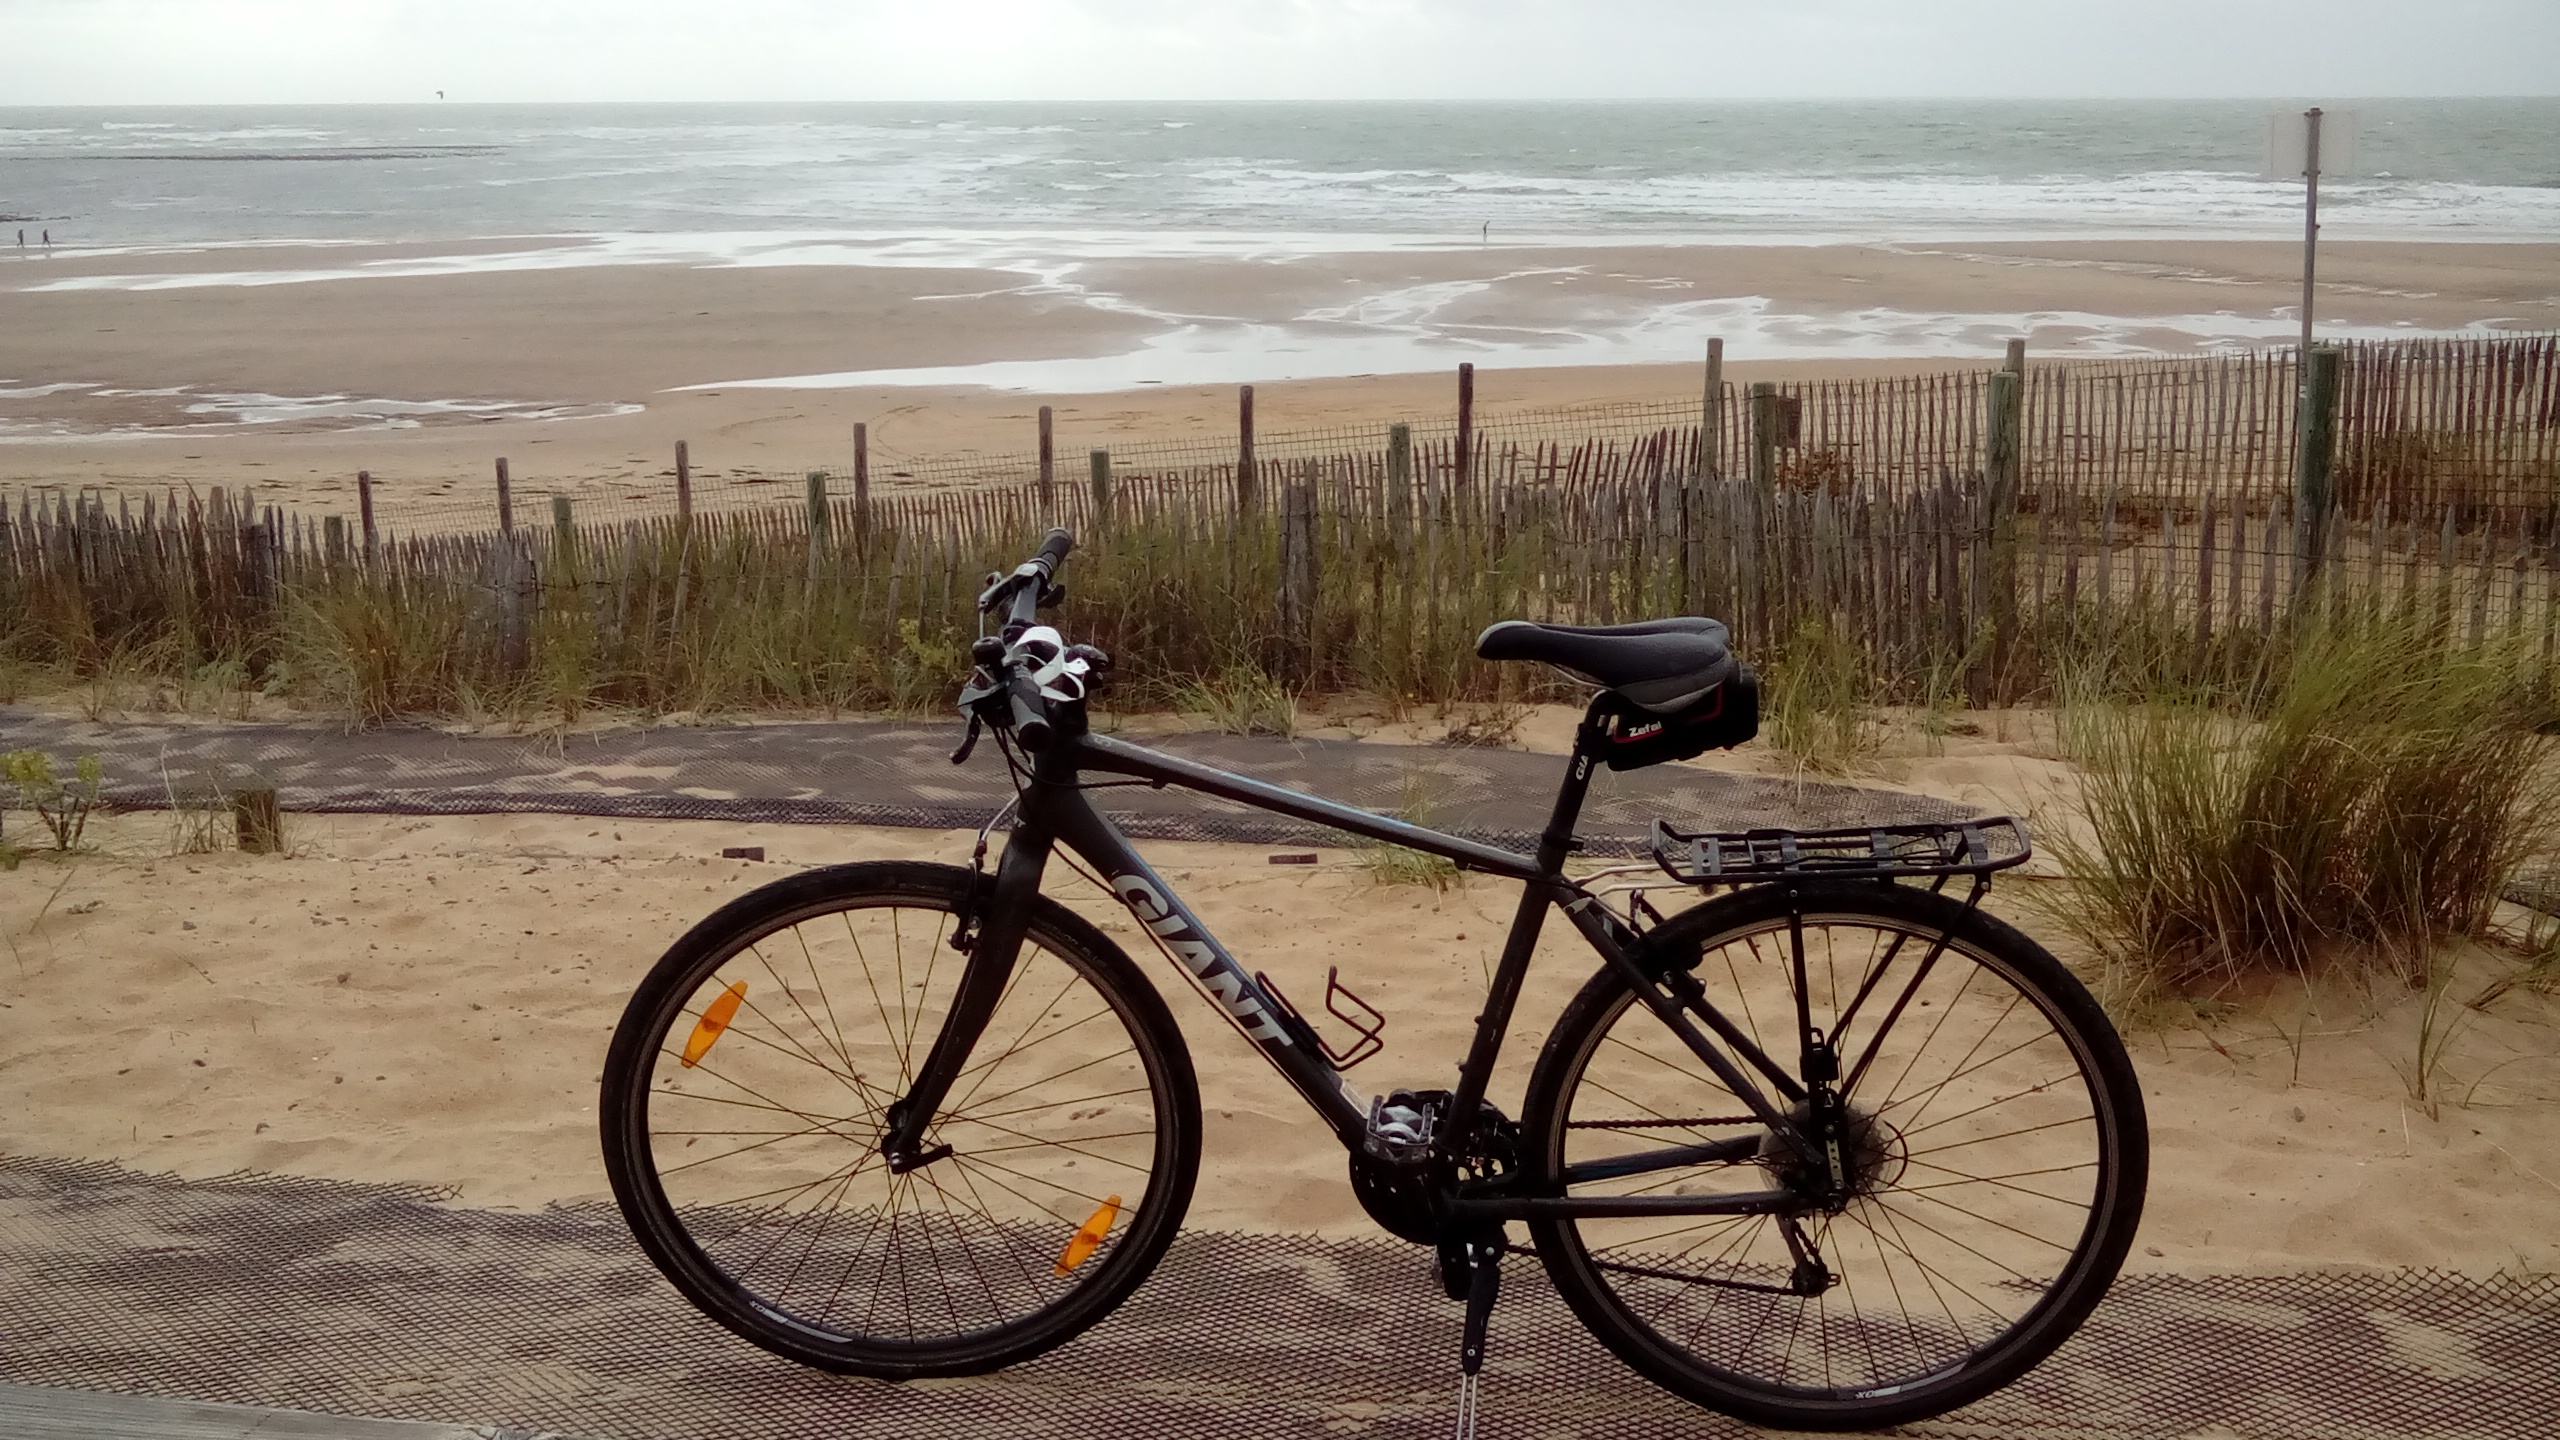 Hybrid bike at the beach